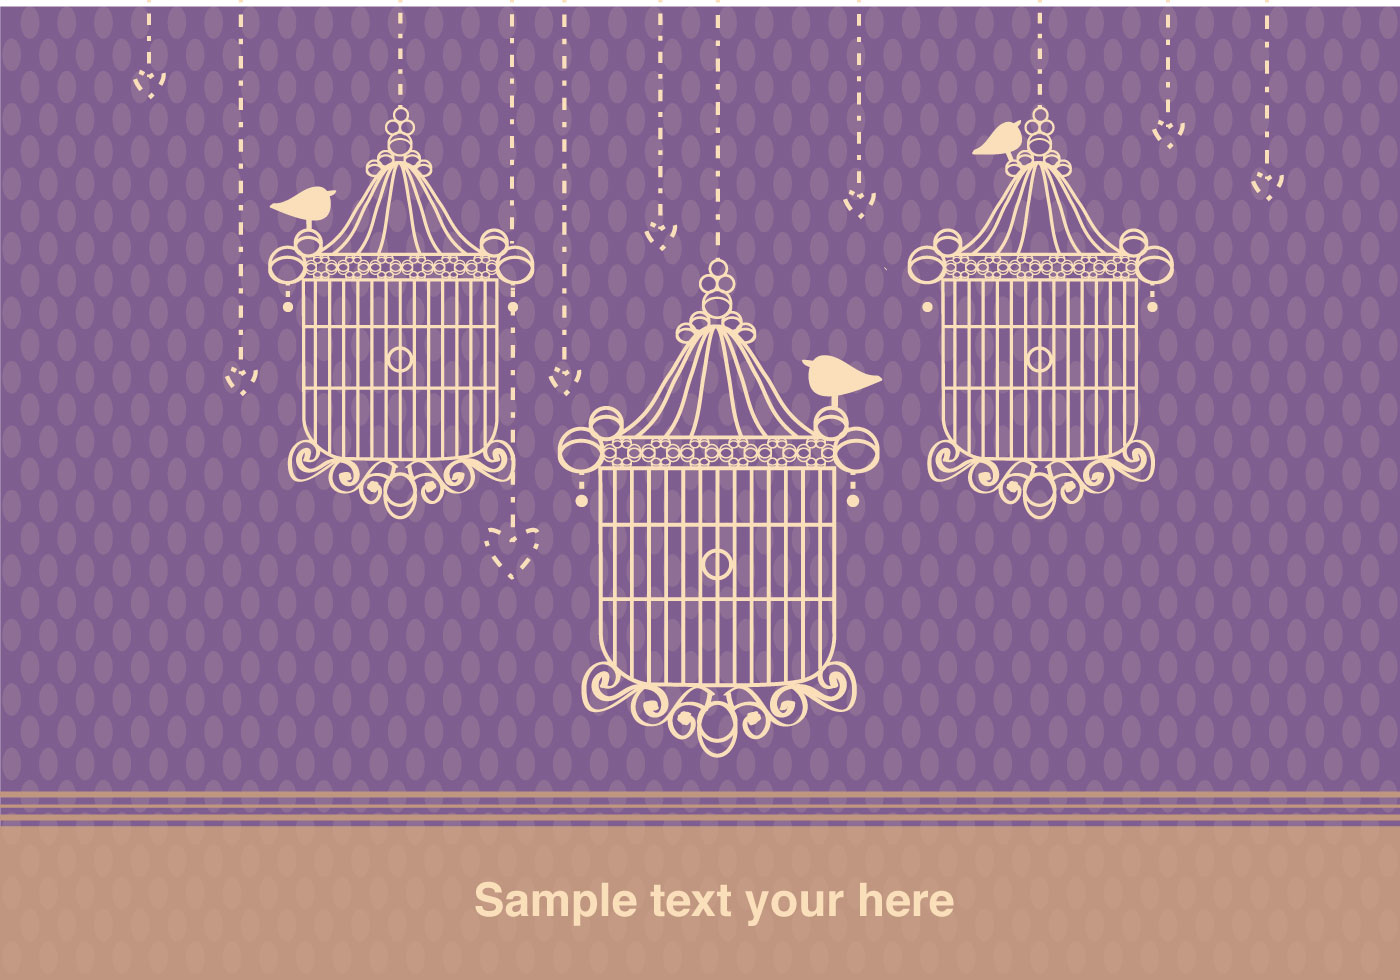 Background with Bird Cage Vintage Style - Download Free Vector Art, Stock Graphics & Images